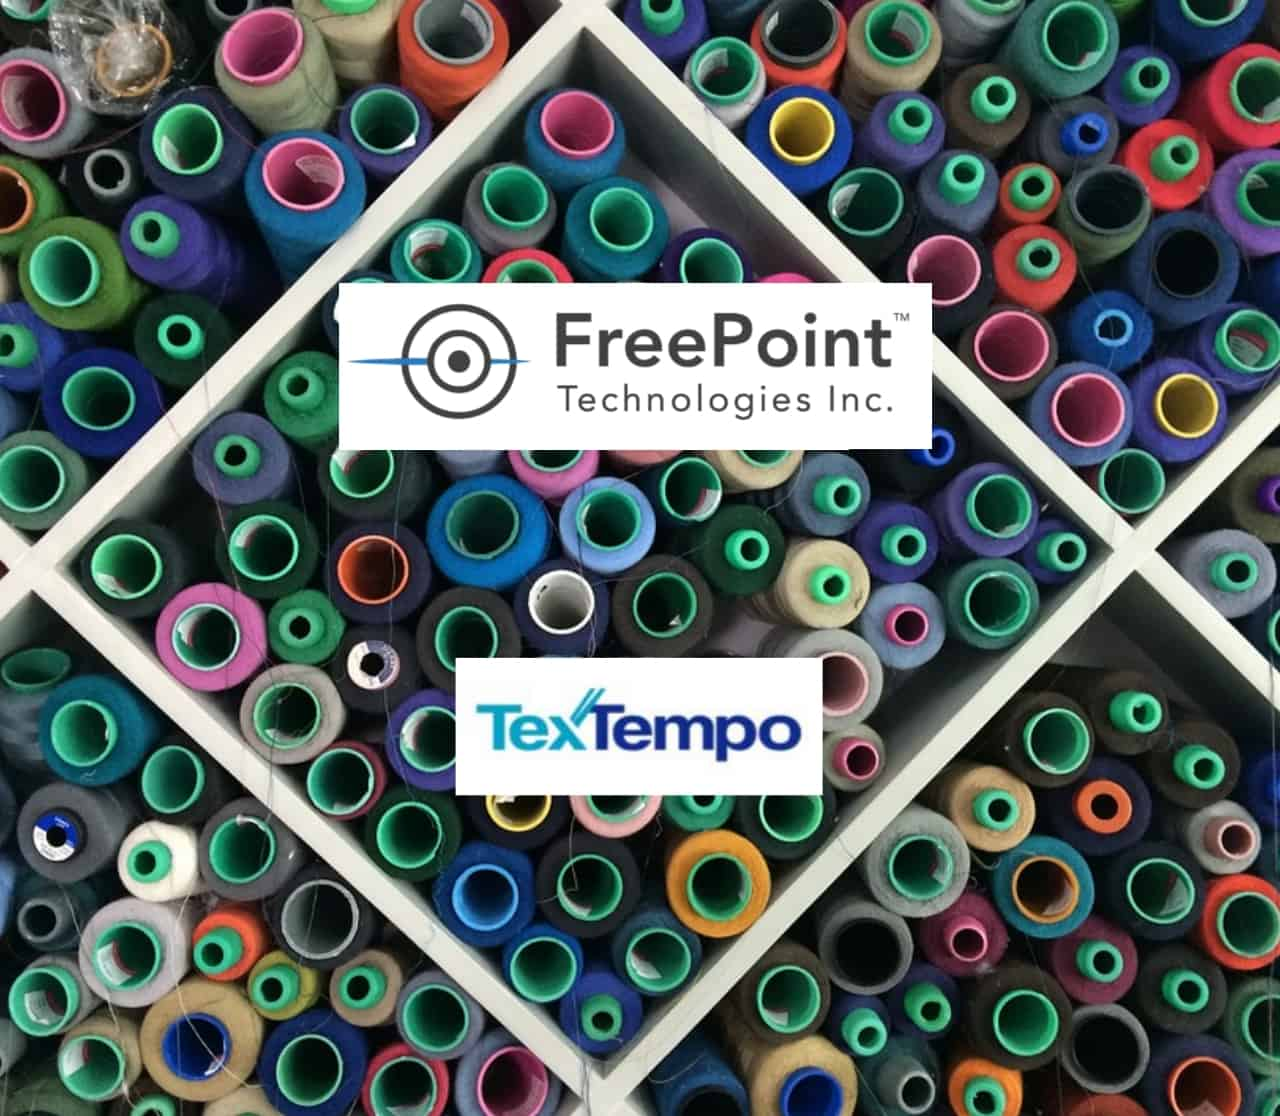 FreePoint Technologies and Tex Tempo Team Up